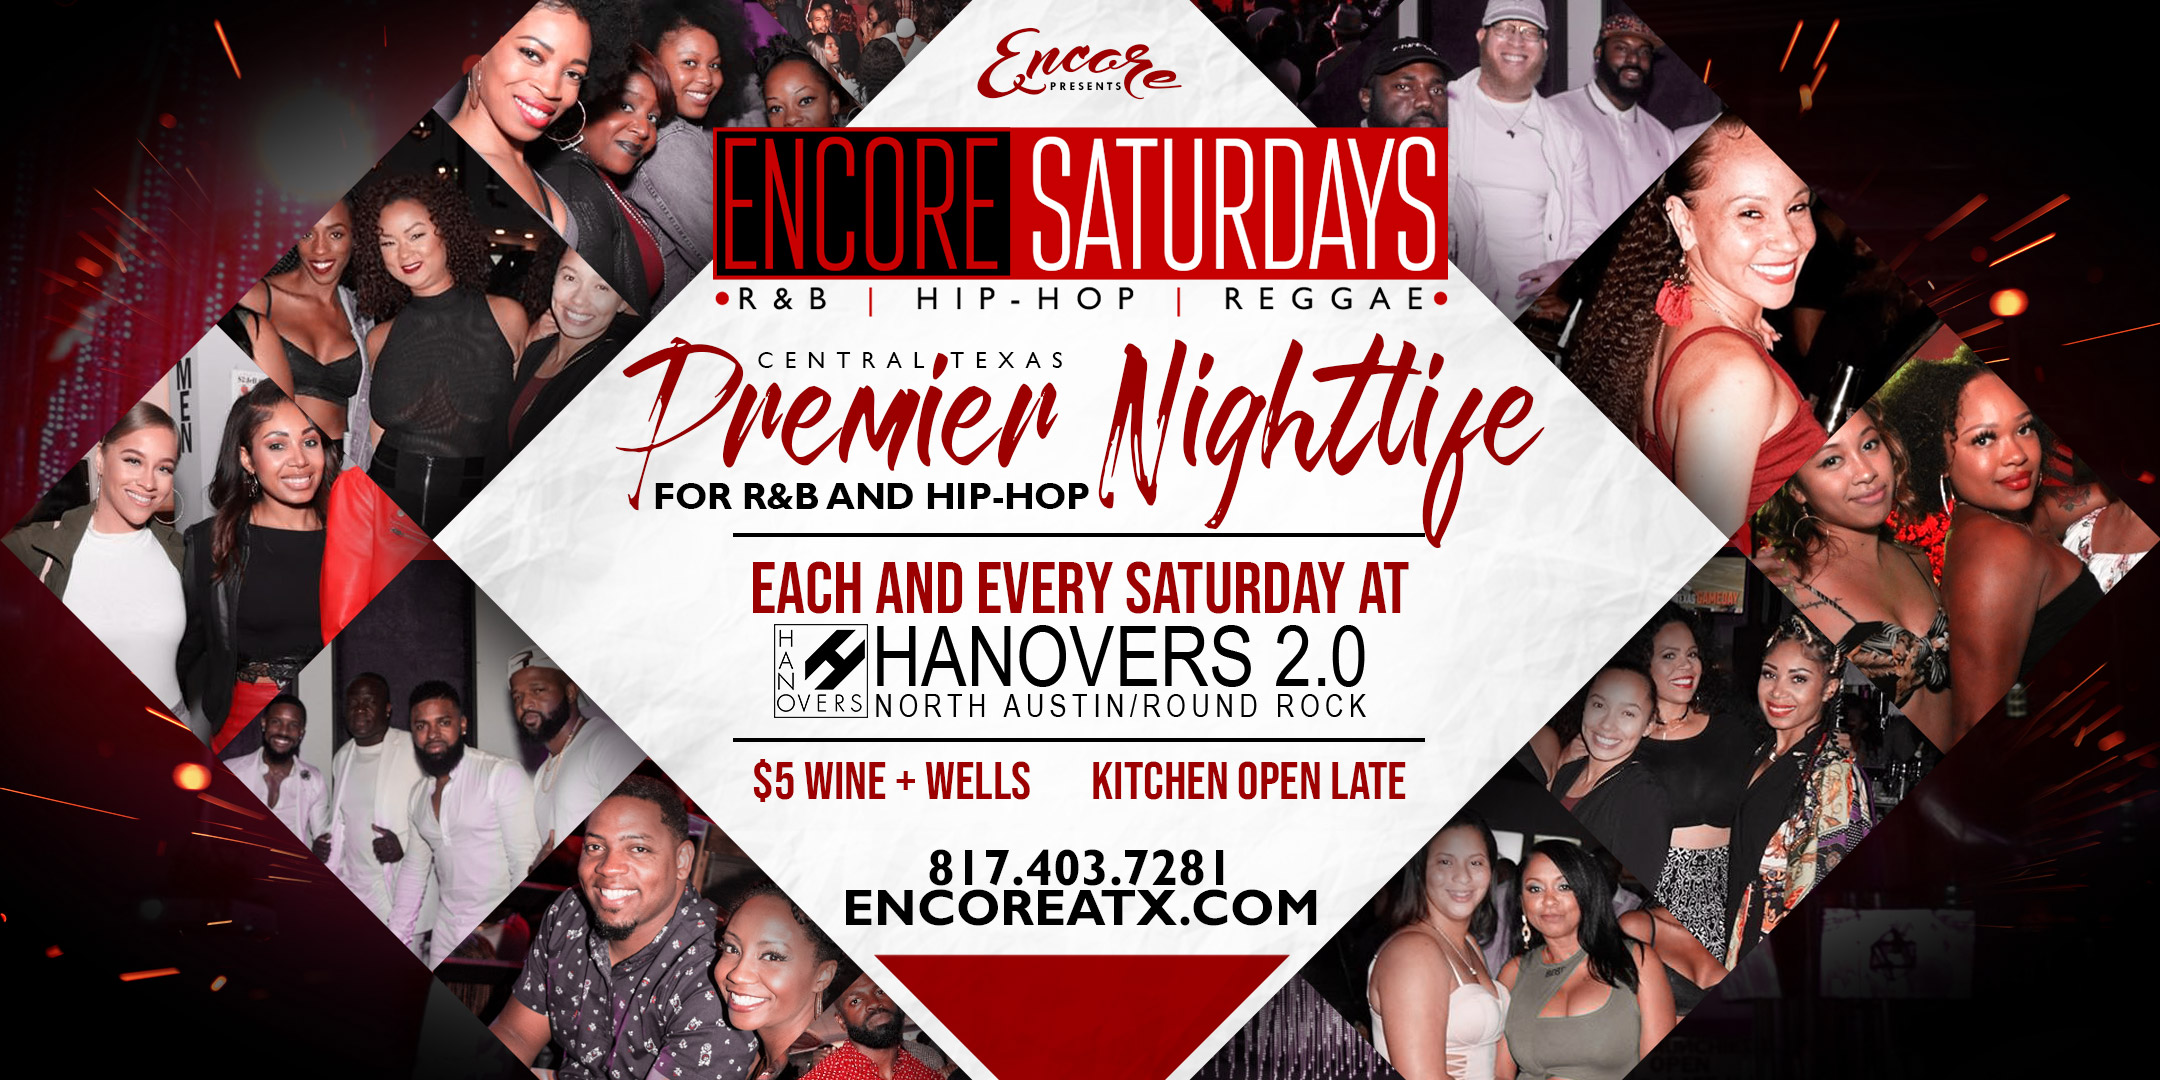 encore_saturdays-eventbrite_banner-02